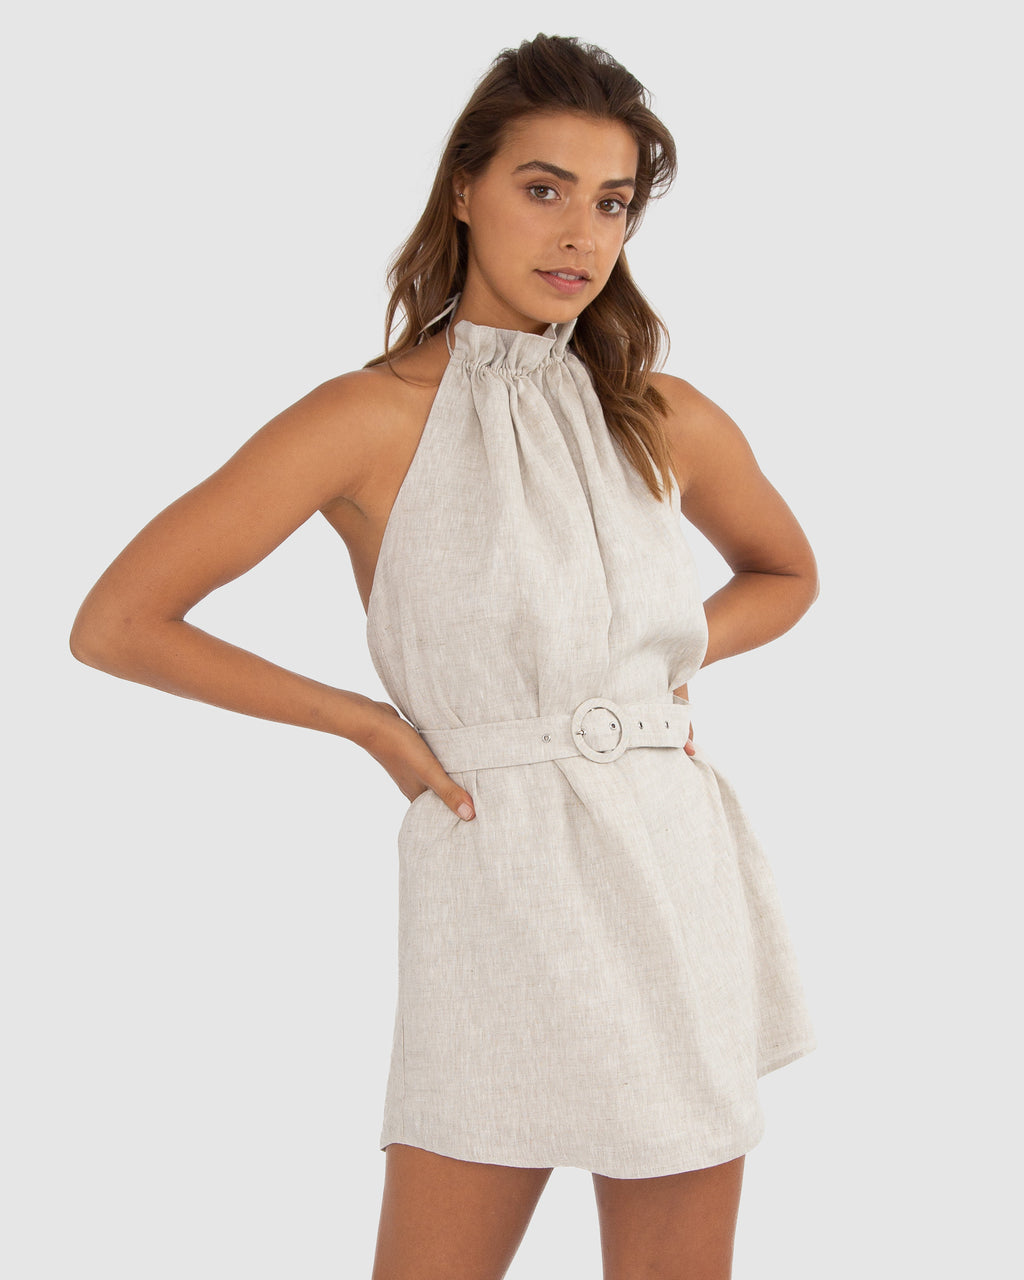 LUCIENE HIGH NECK DRESS